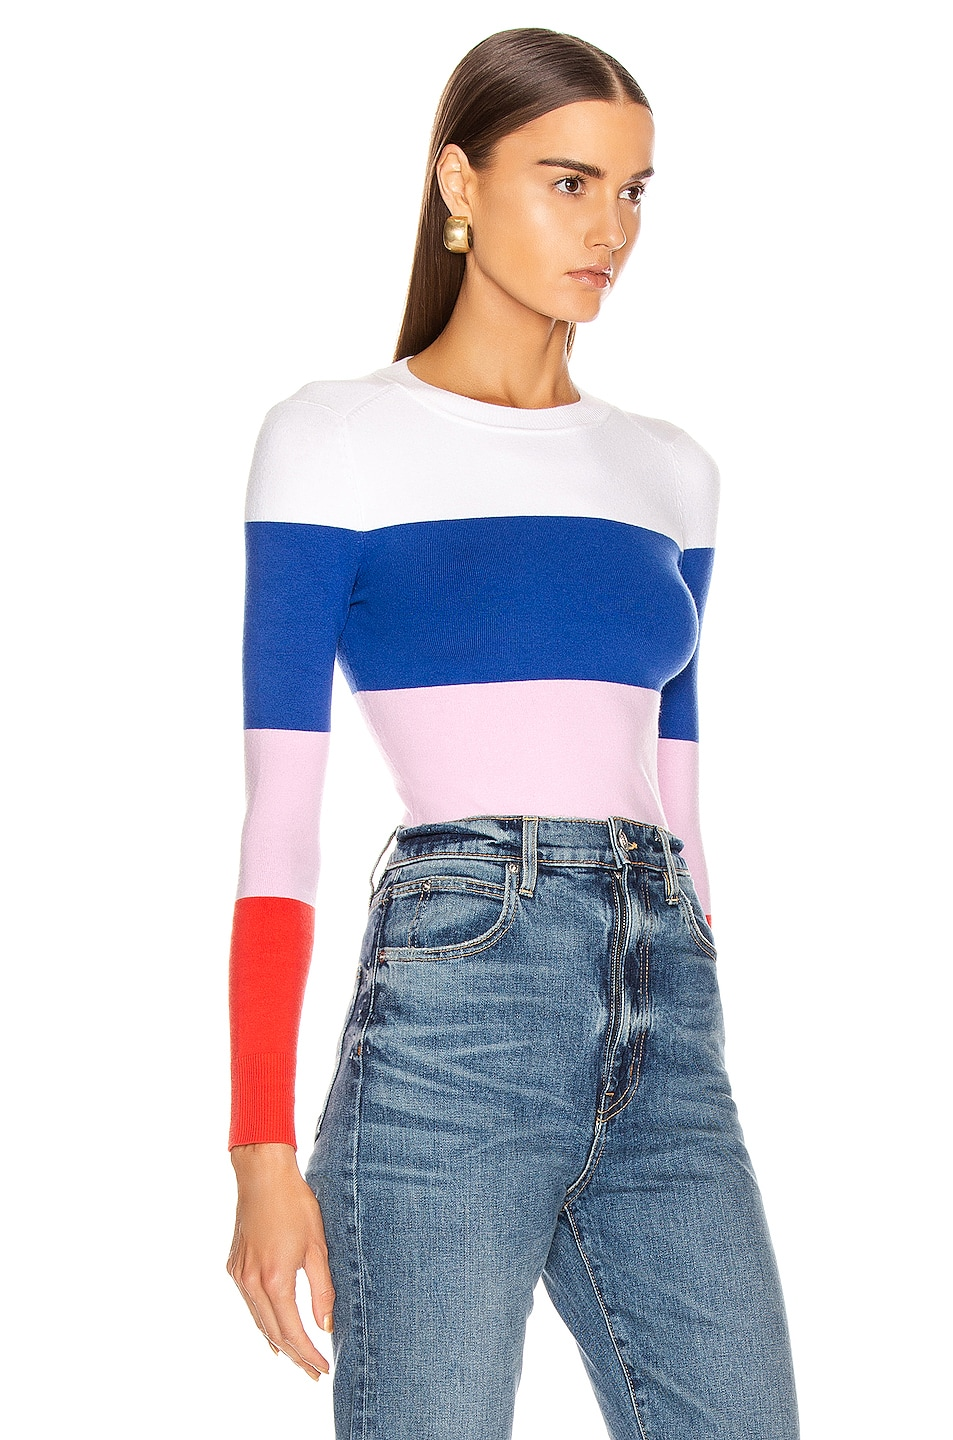 Image 2 of JoosTricot Long Sleeve Crew Neck Sweater in Laser White, Ultramarine, Wild Rose & Fire Poppy